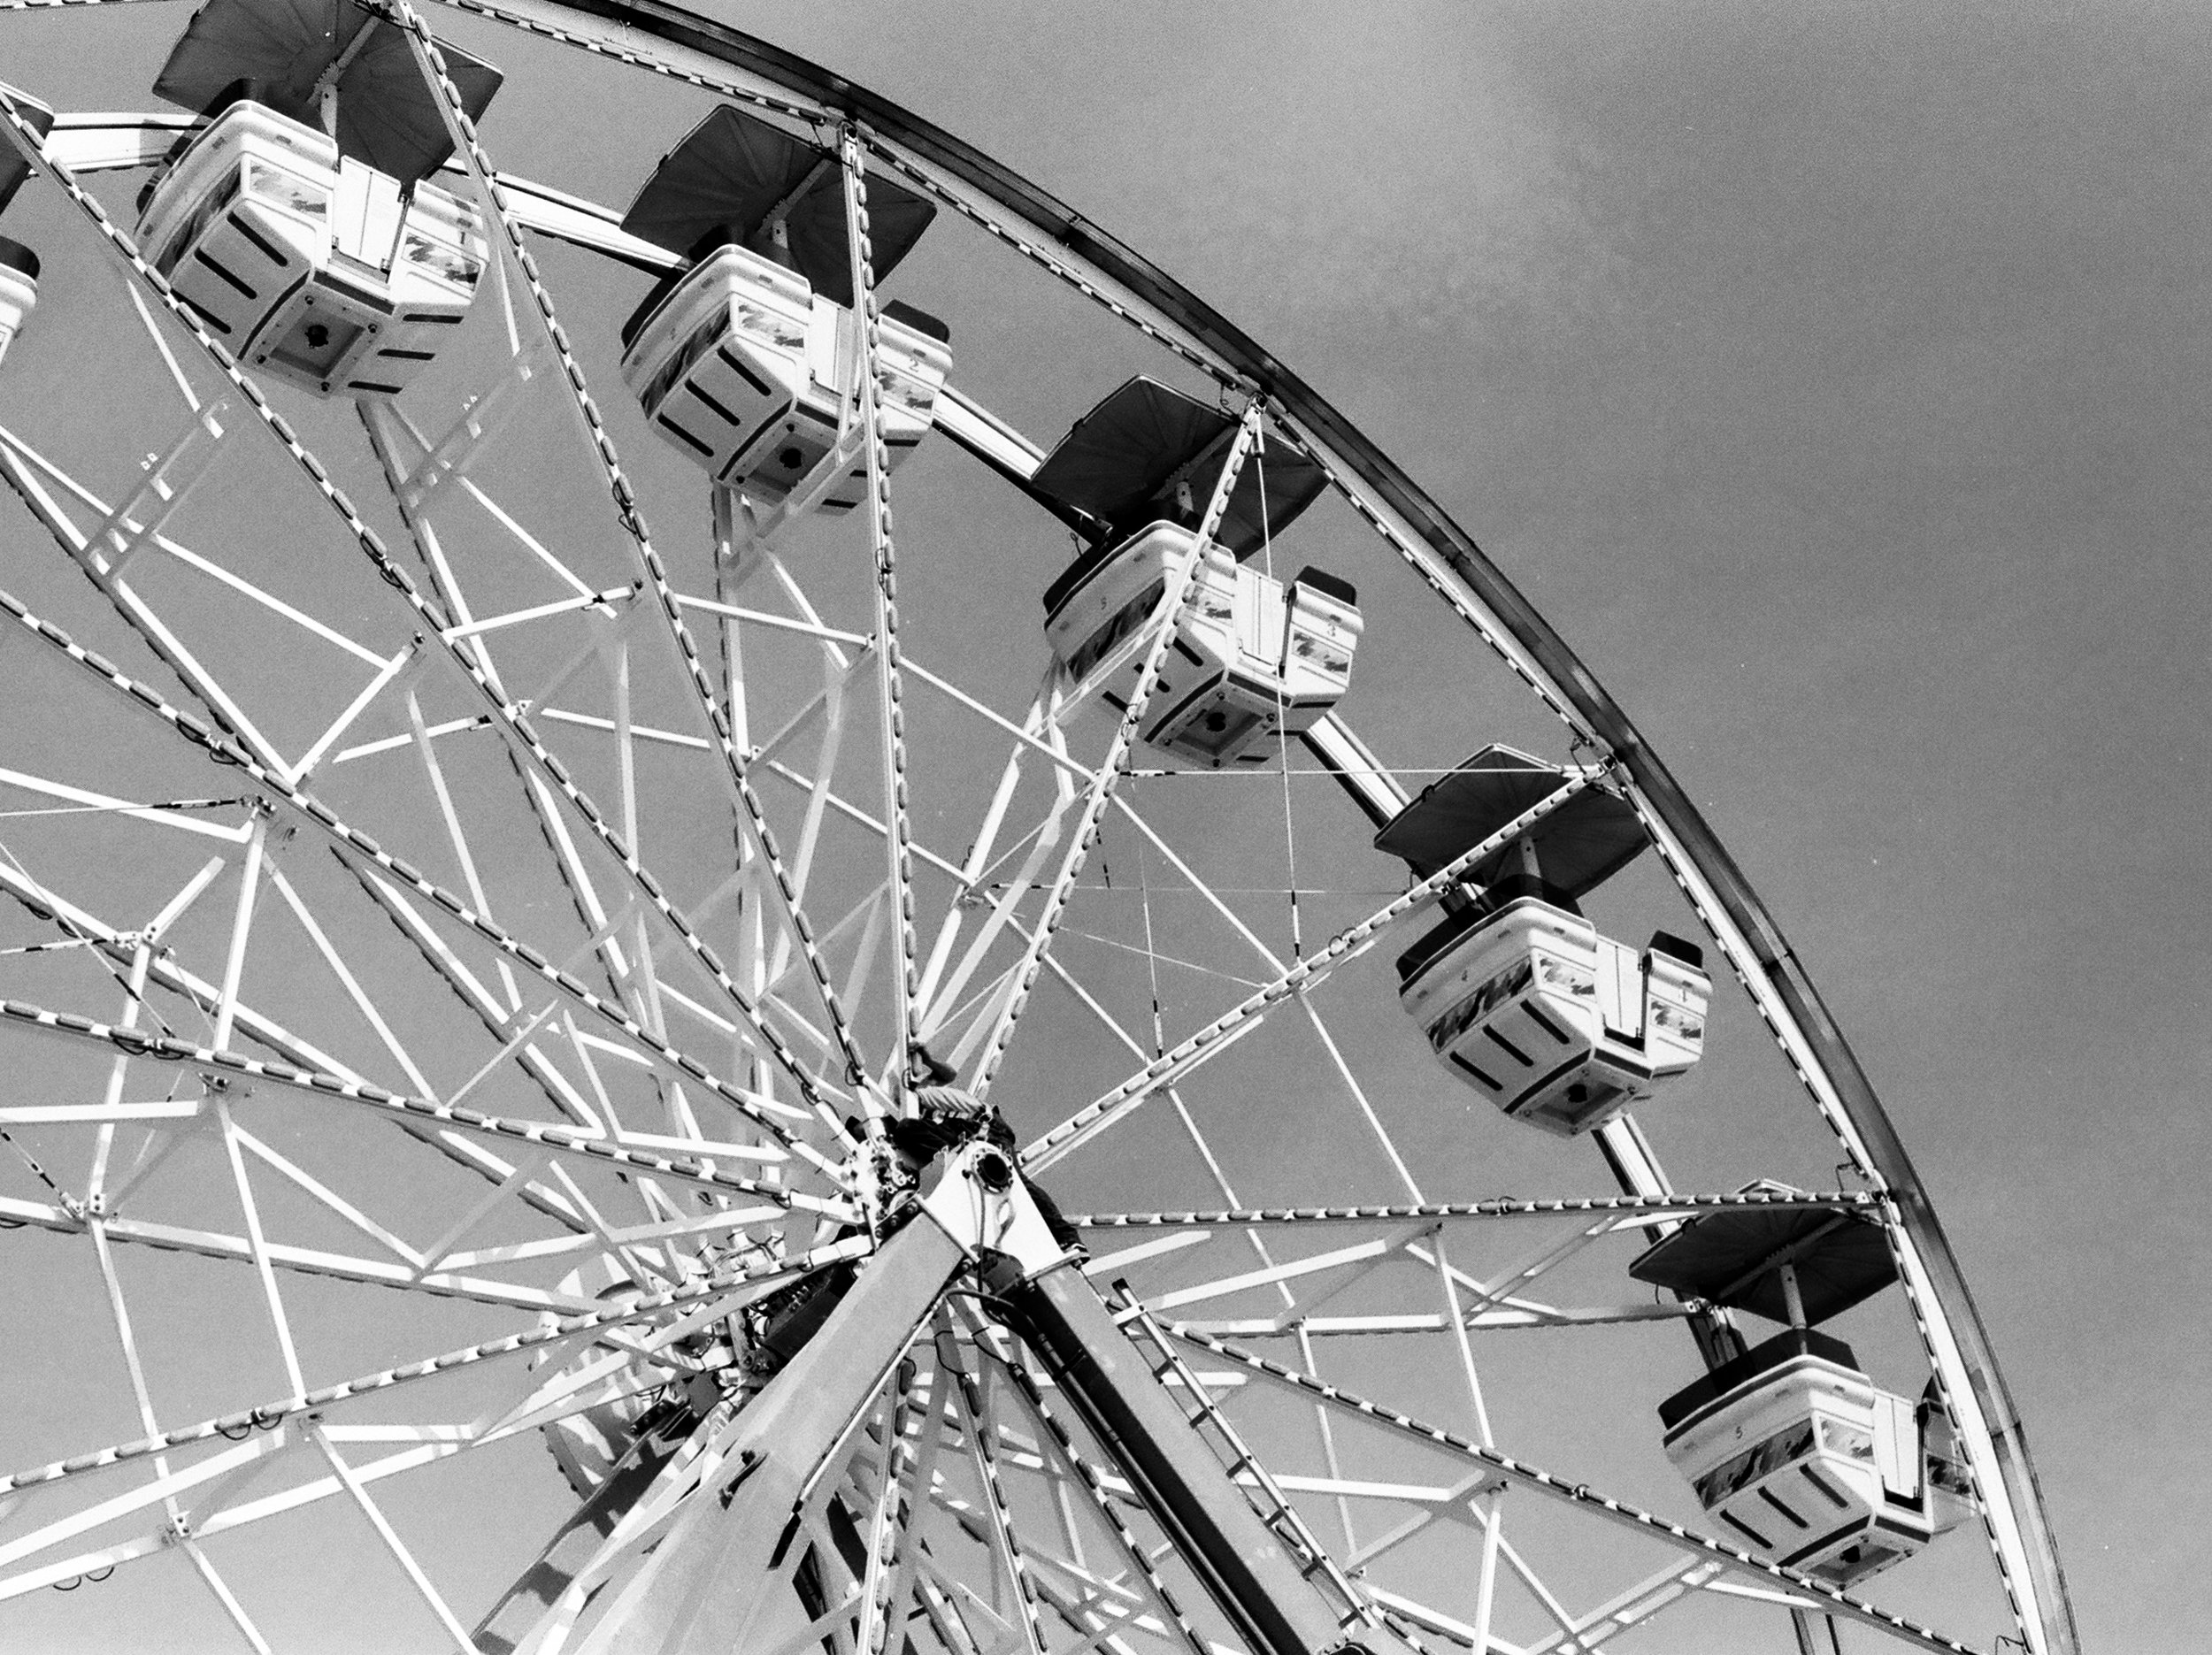 Electra Wheel, Old Orchard Beach, ME, 2018.